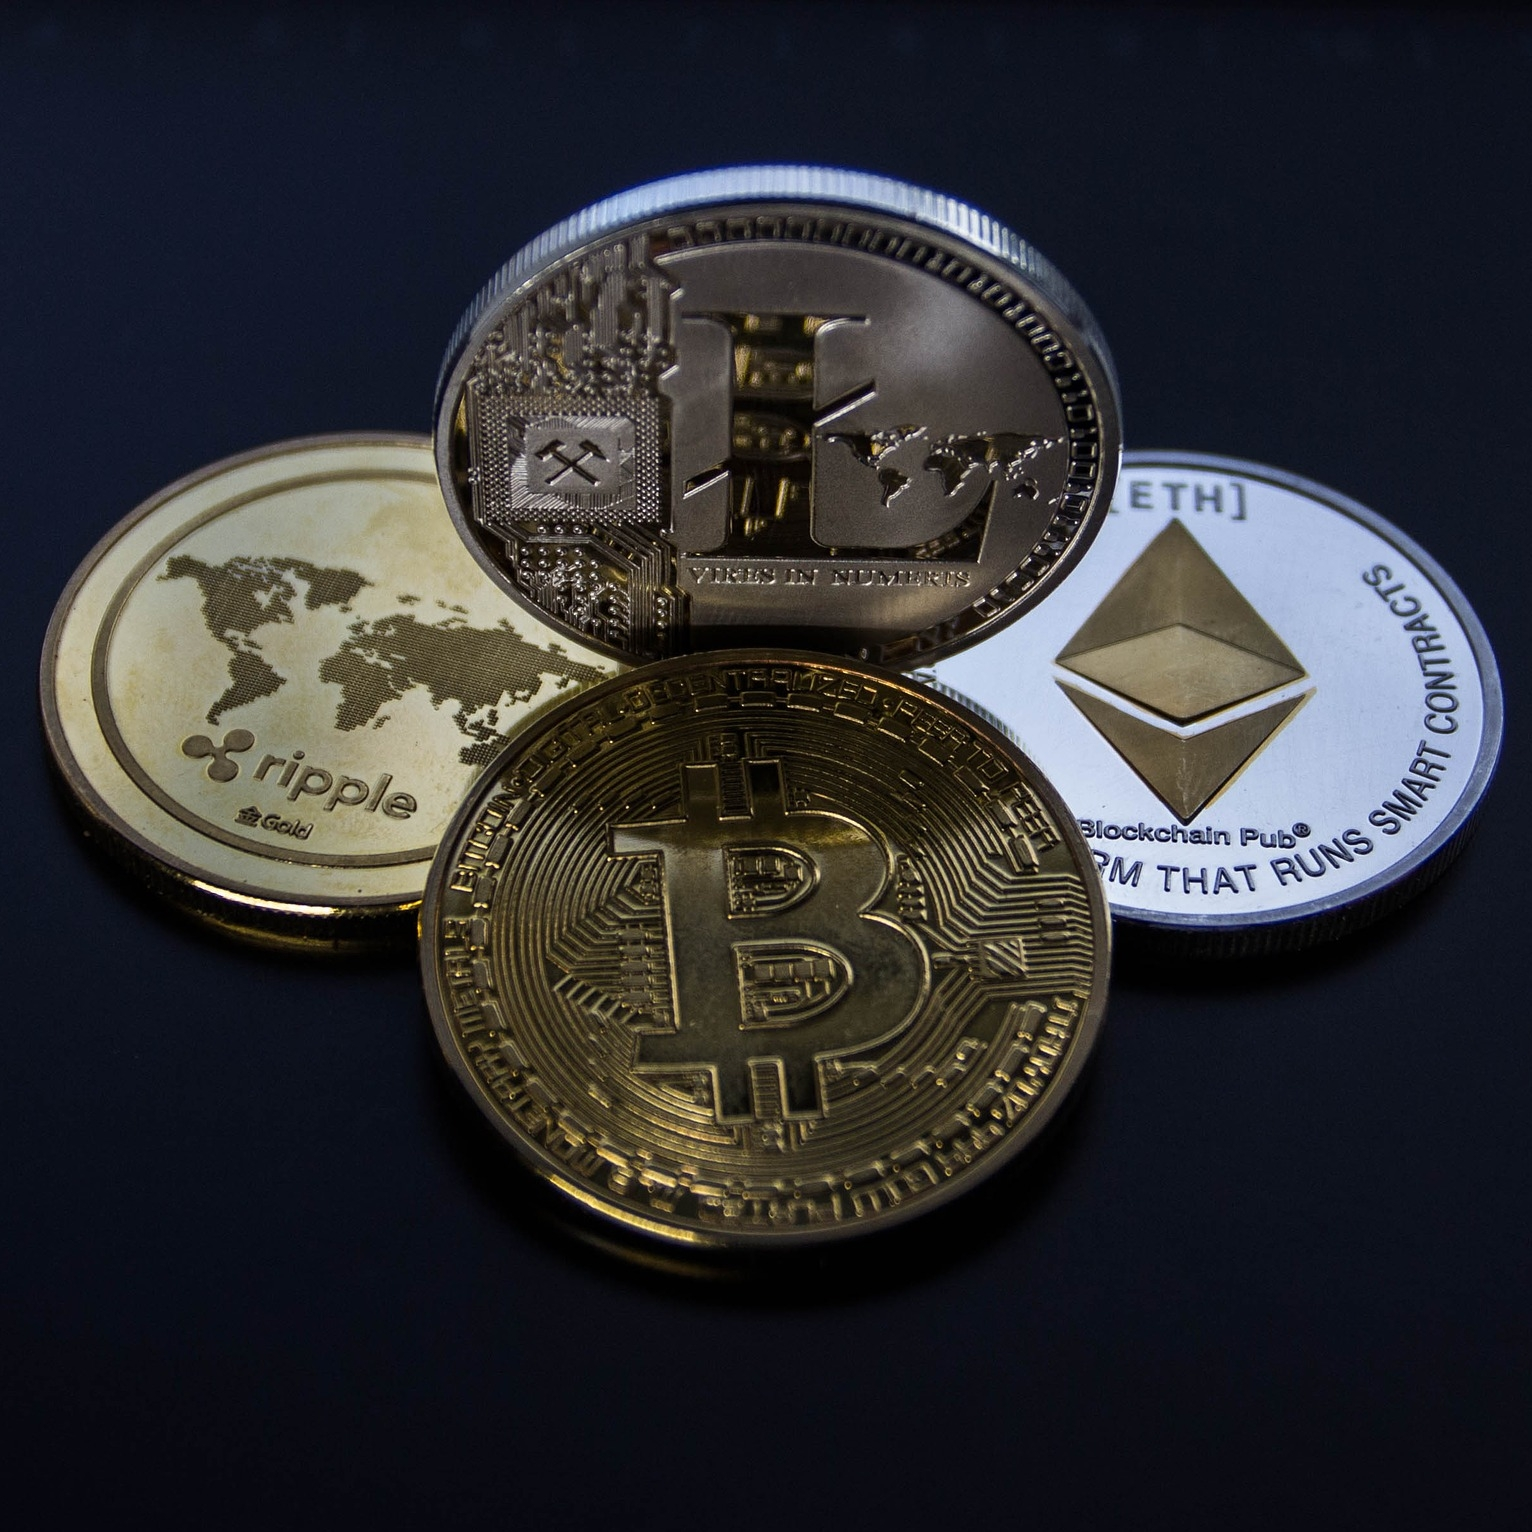 THE PRICE OF BITCOIN IS ABOUT TO GO UP - Bitcoin is being mass adopted and since its value is determined by supply and demand, as its demand grows faster than its limited supply of 21 million, its value must go up.Making now the perfect time to buy.